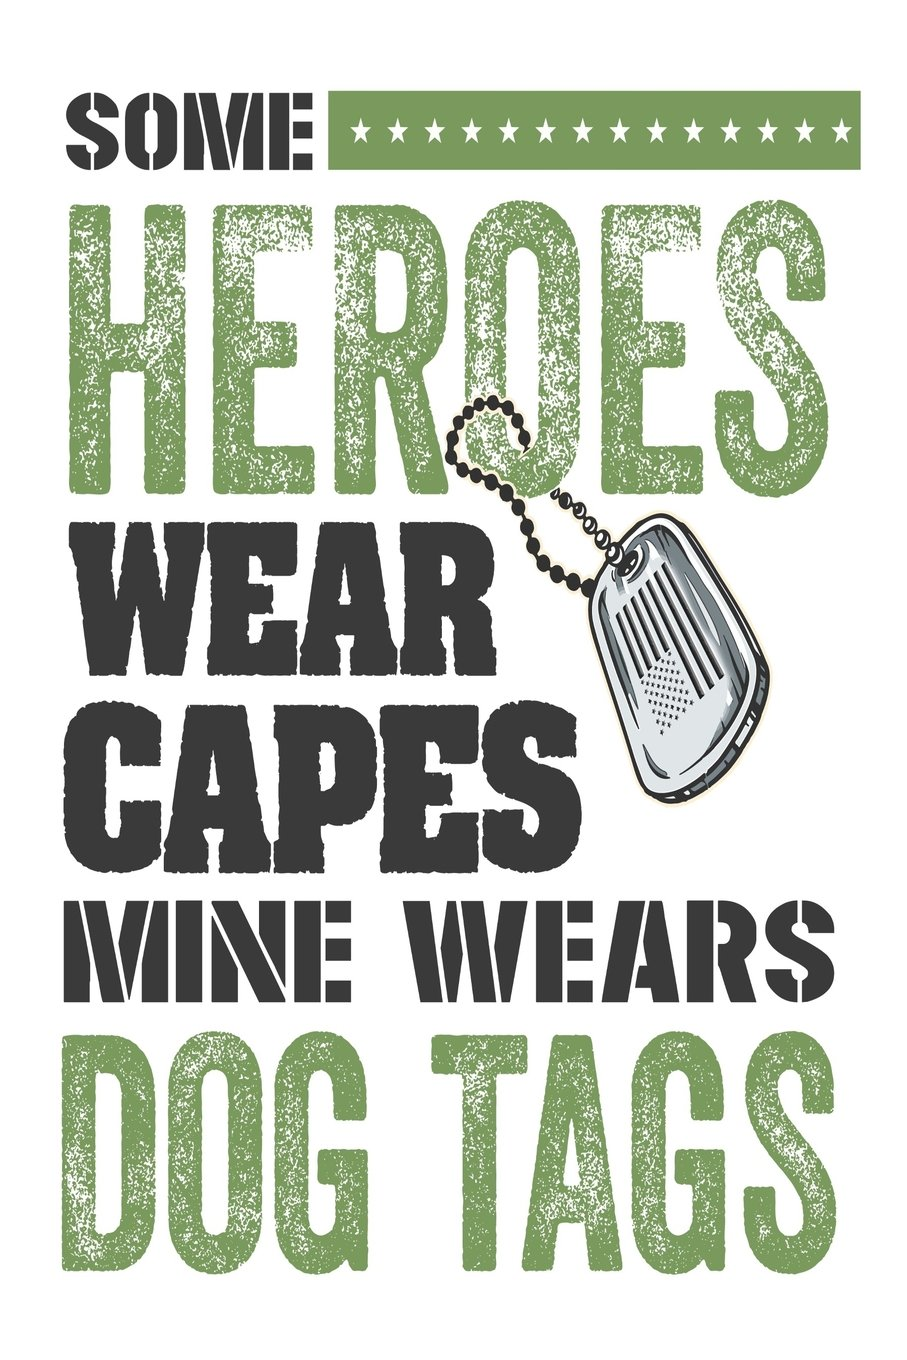 e052f9a62f56 Some Heroes Wear Capes Mine Wears Dog Tags: Funny Military Support ...